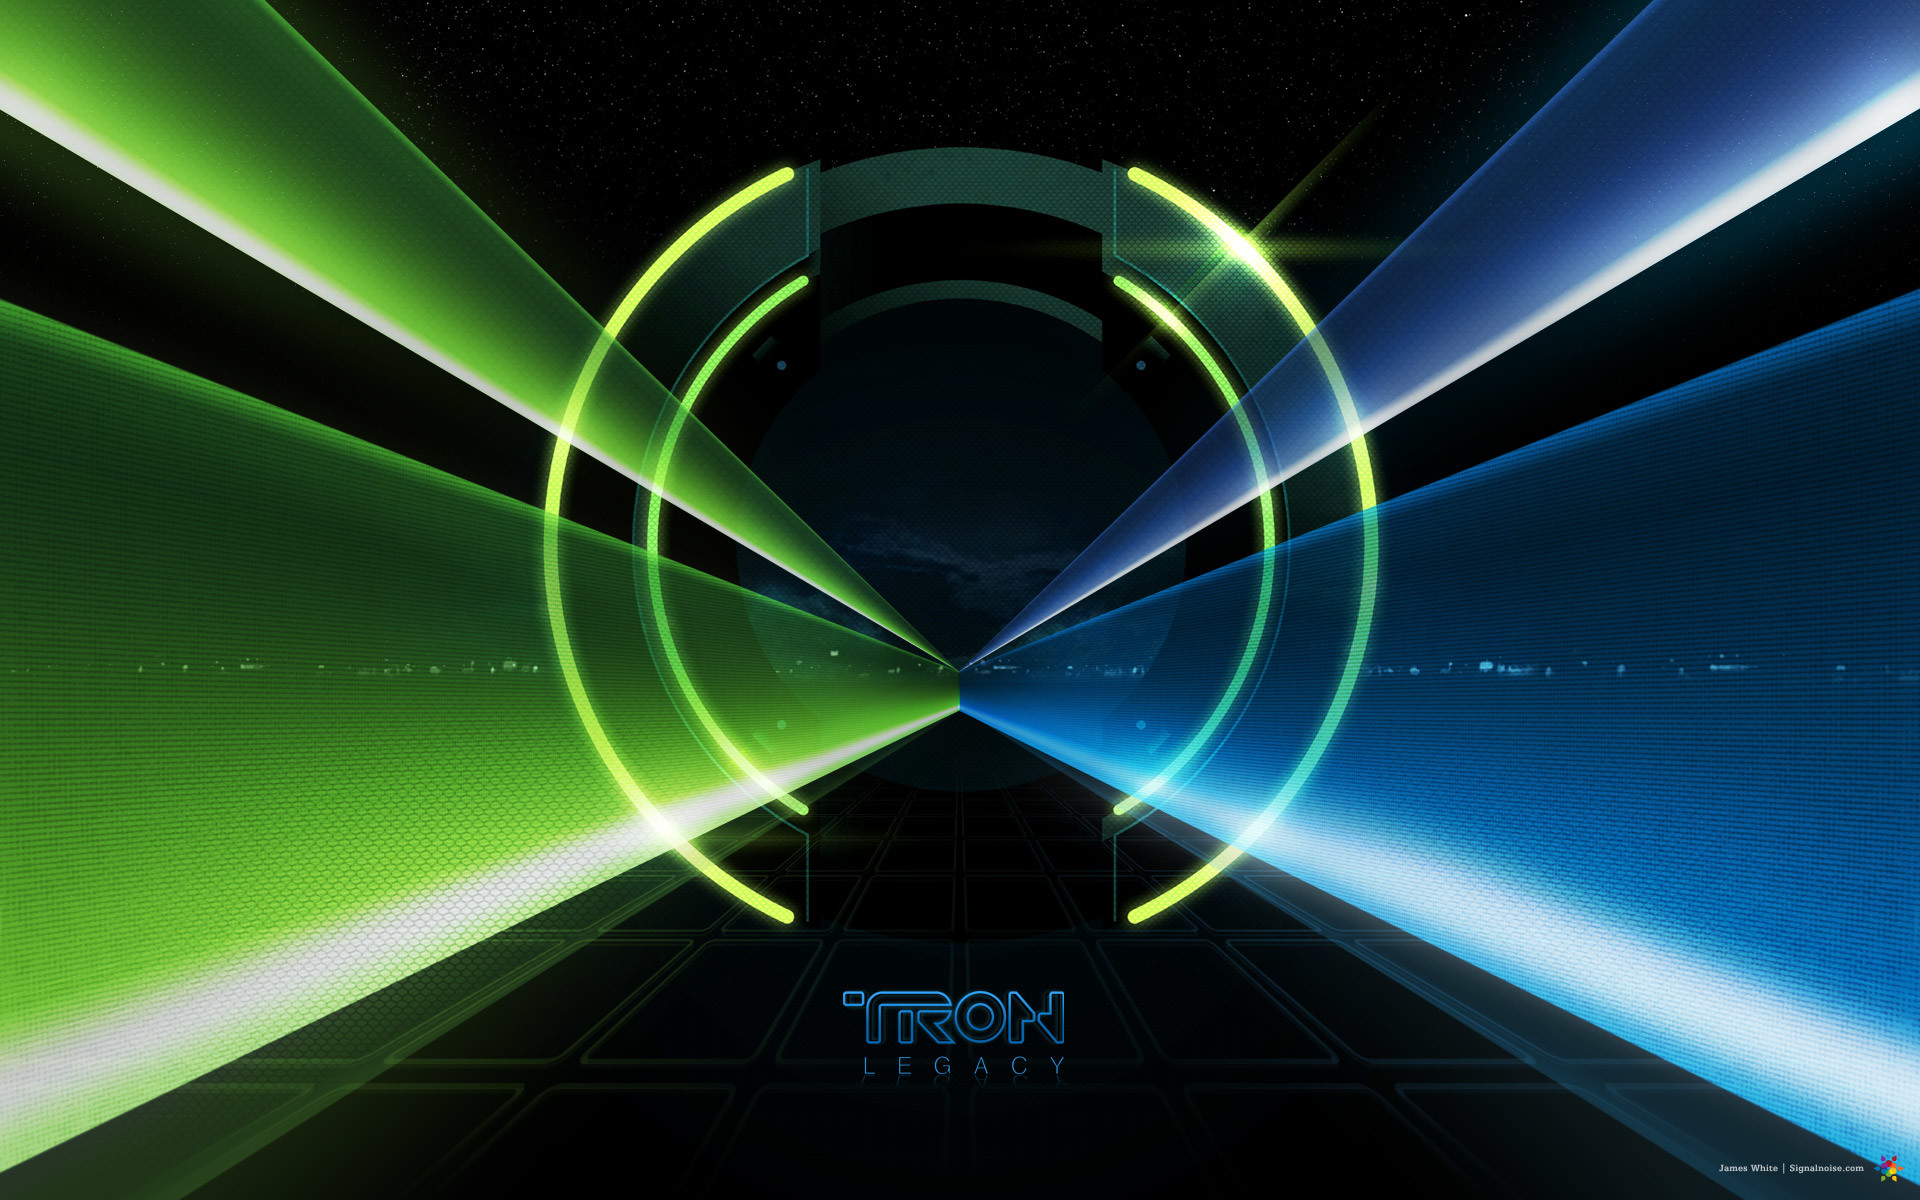 light tunnel from Disney's Tron Legacy movie wallpaper